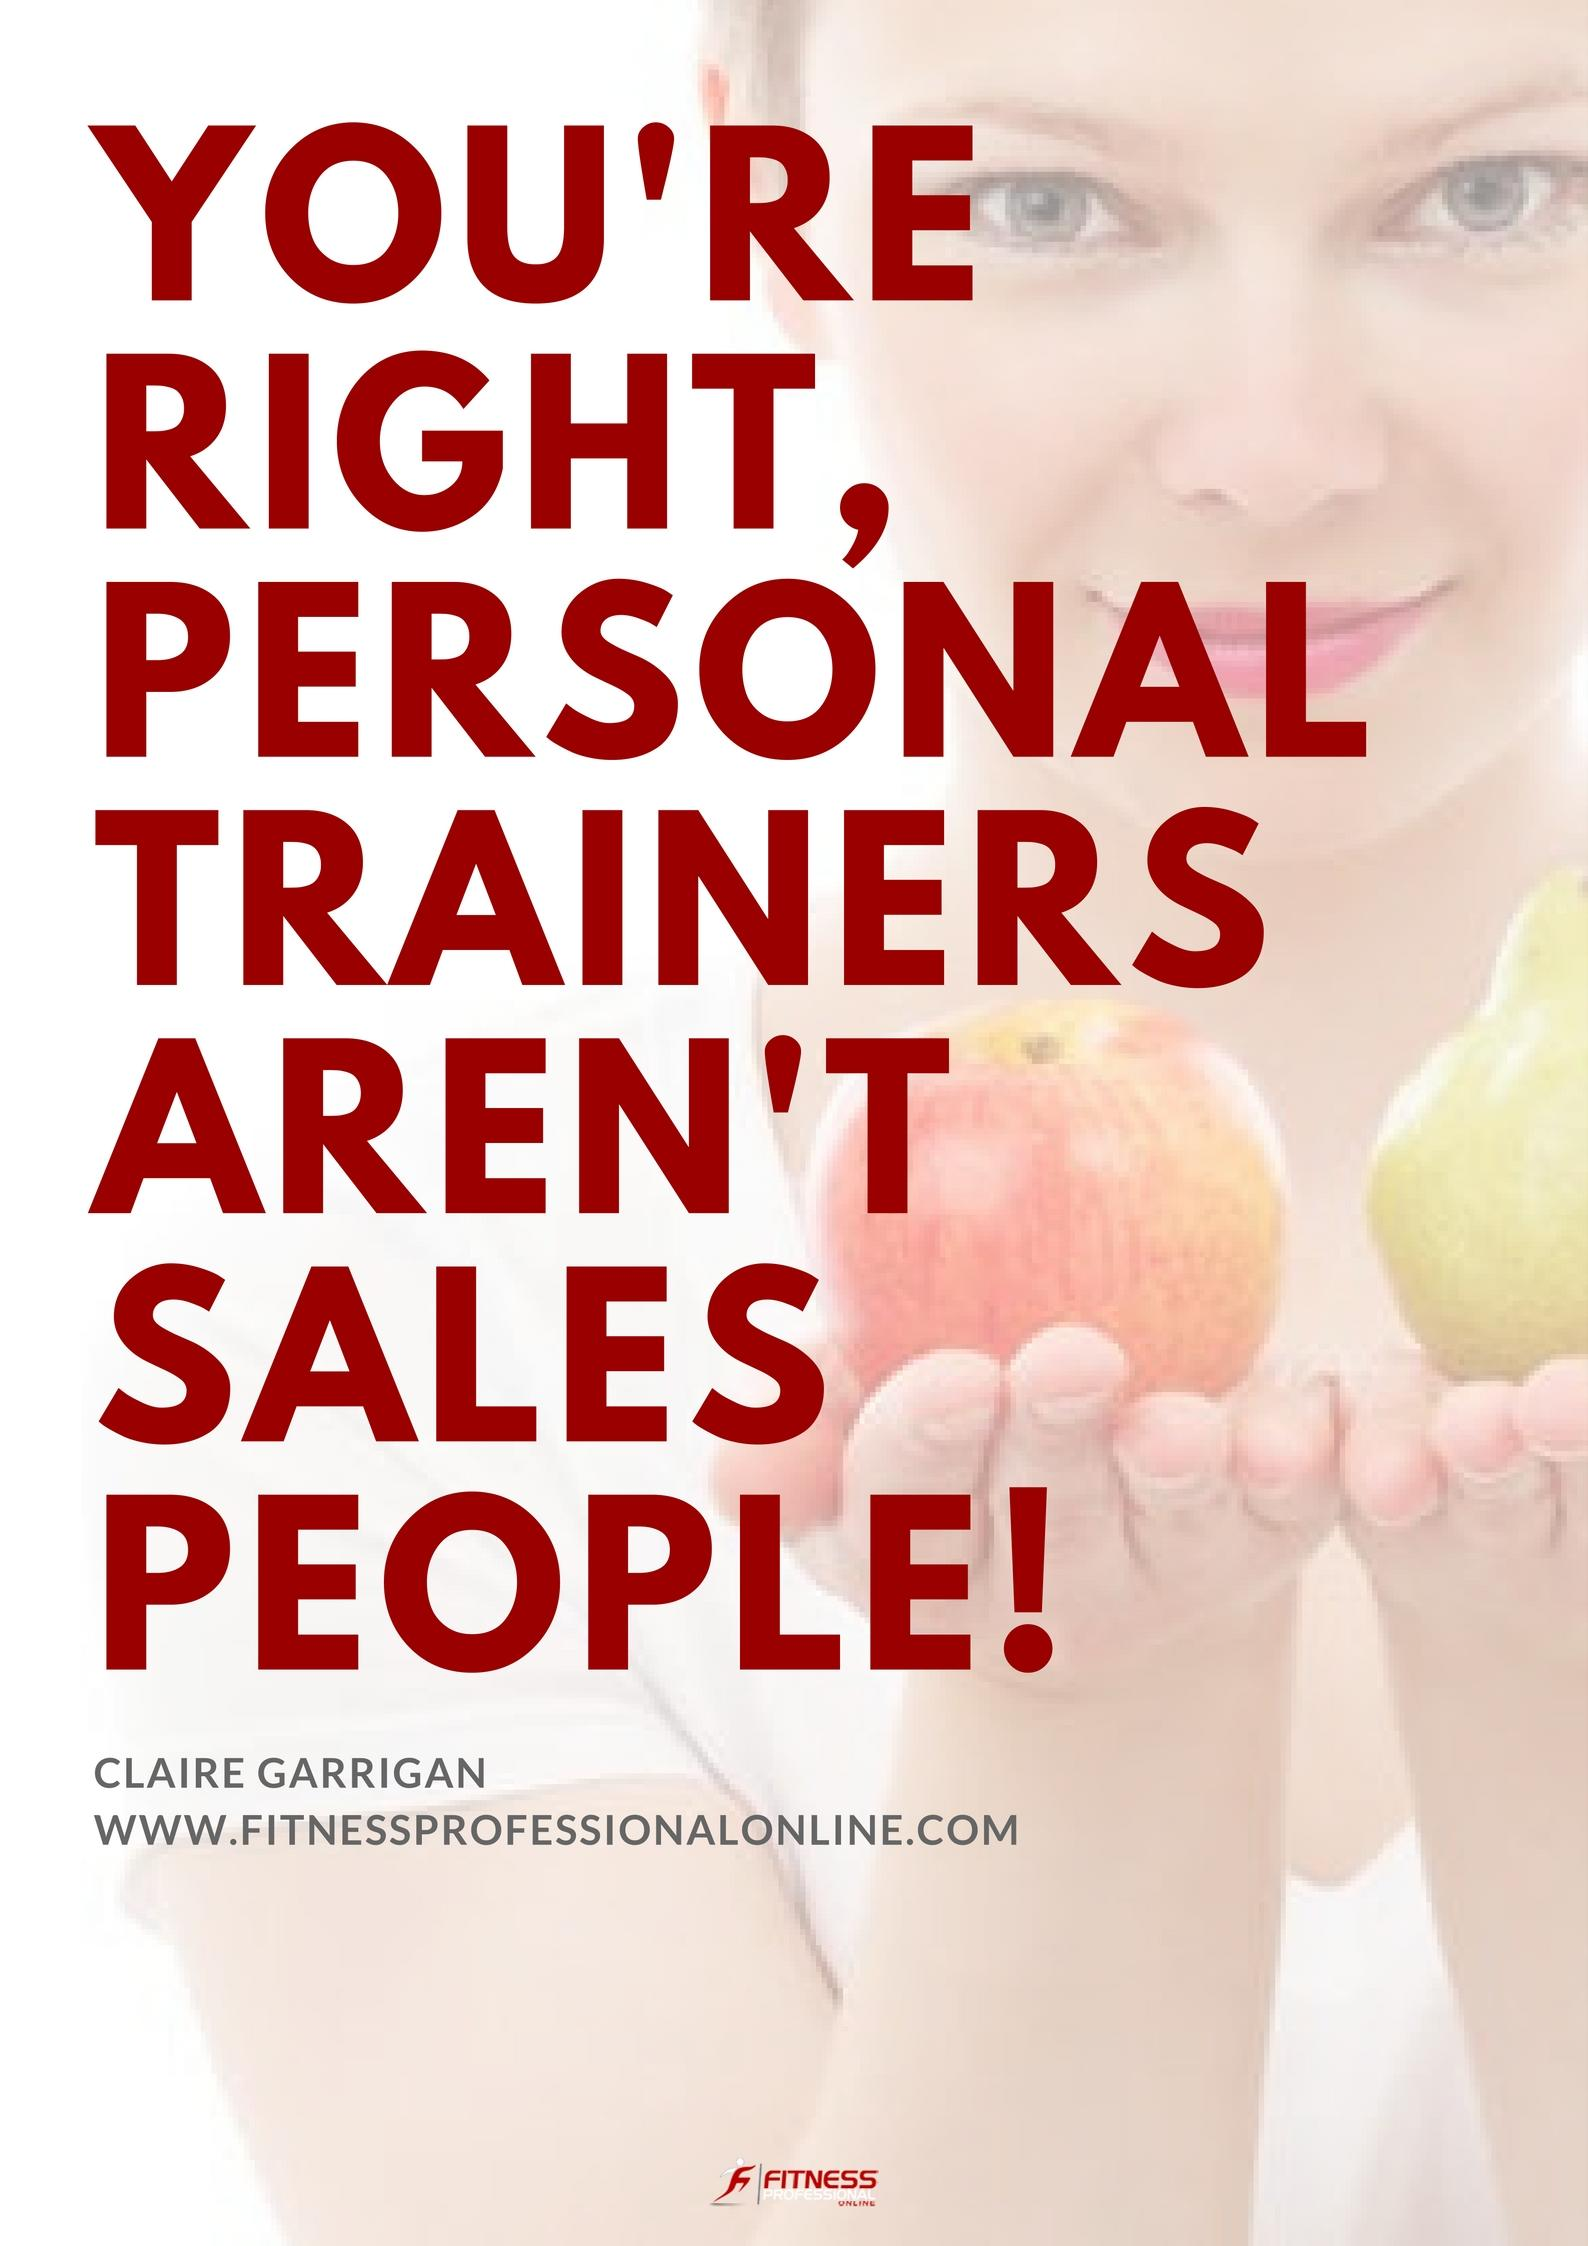 Have a look at the top reasons why personal trainers aren't salespeople and what can be done about it to create the perfect balance between the two titles.